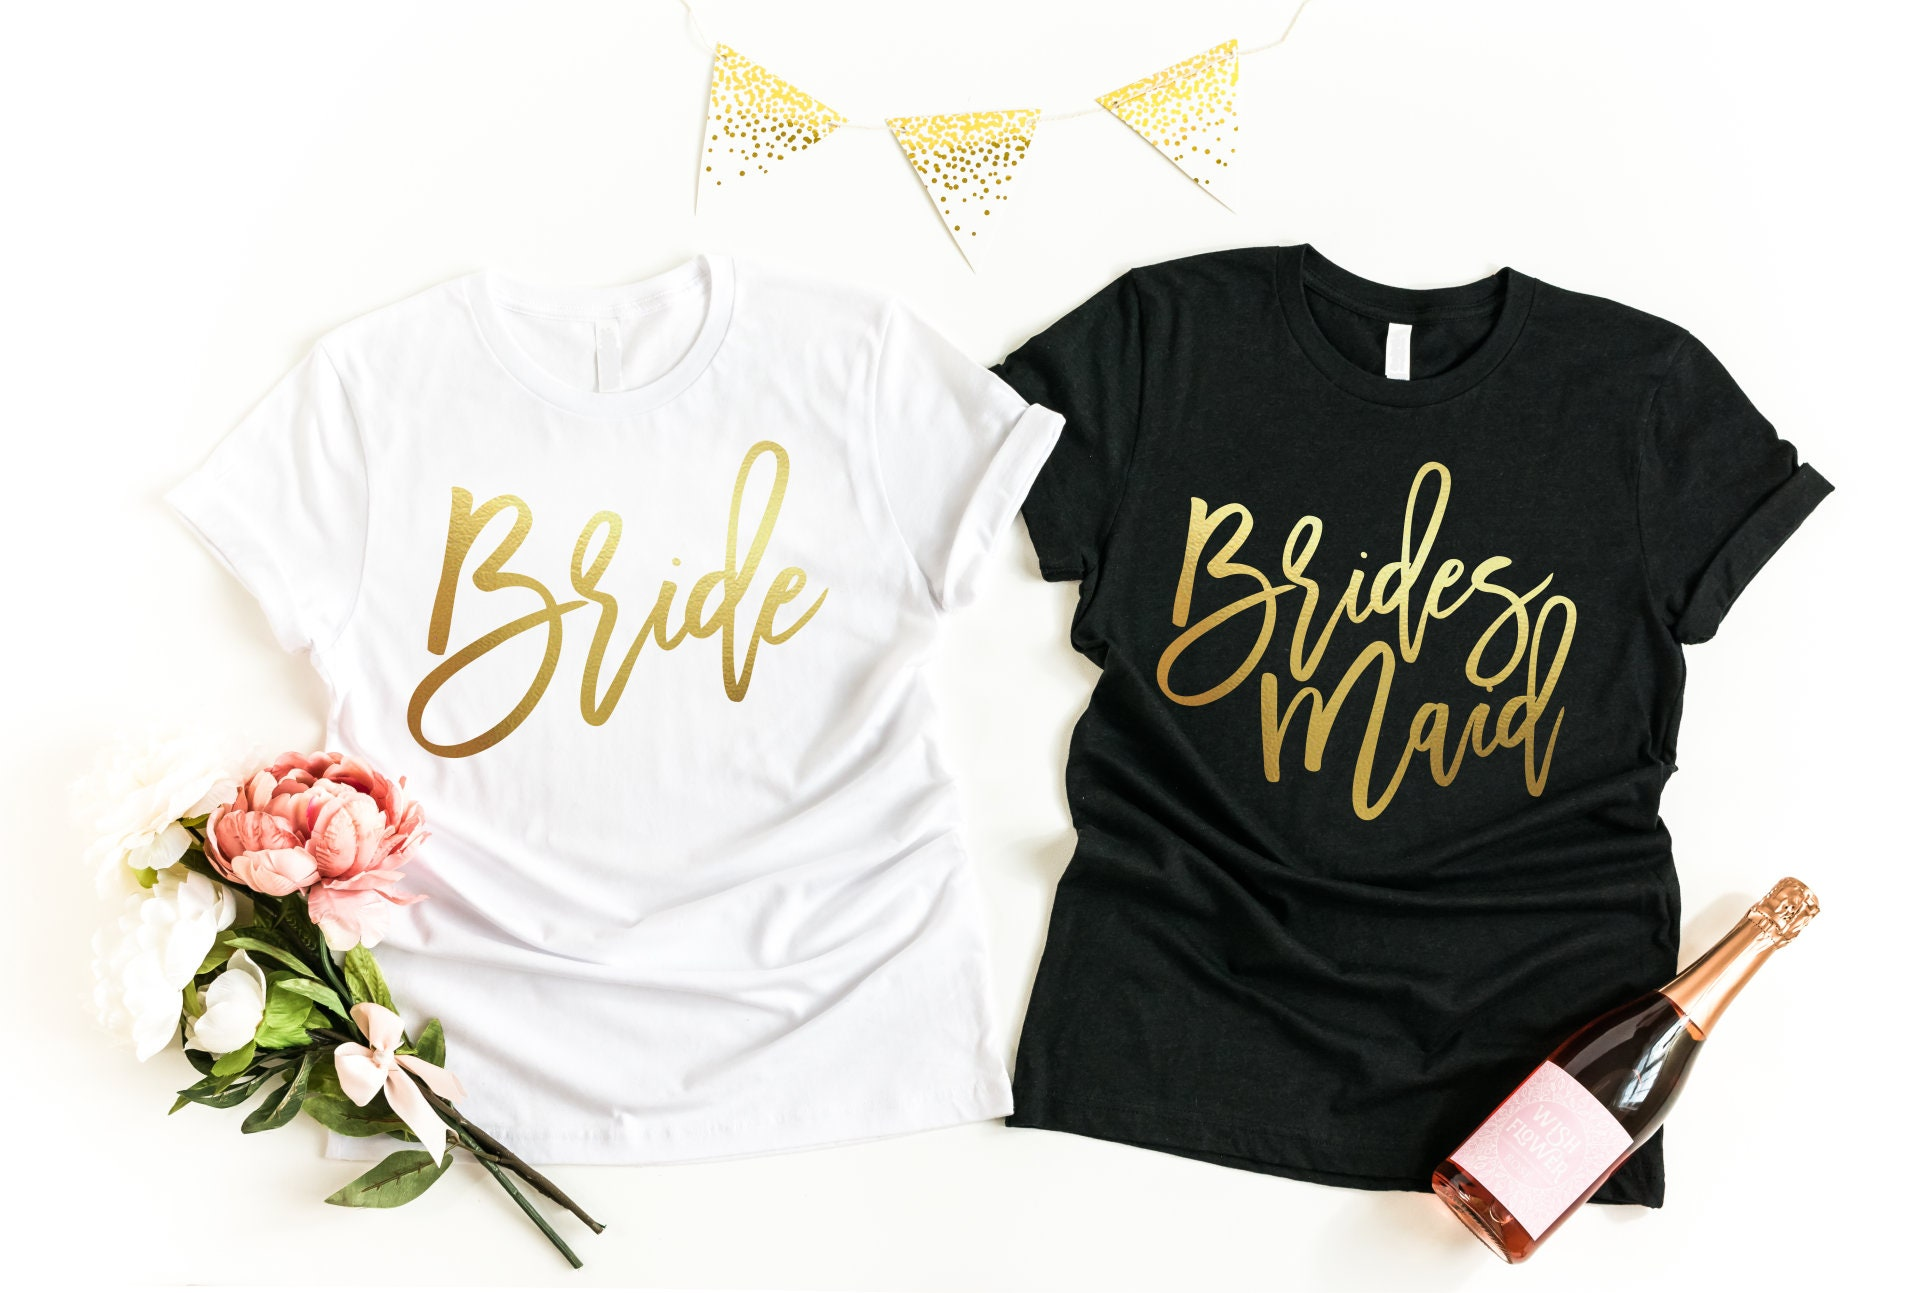 9ef38b070b16 Bridesmaid Tshirt Set (you choose qty); Custom Bachelorette Shirts,  Matching T Shirts, Bride Squad, Wedding Tees Bridal, Bachelorette Party